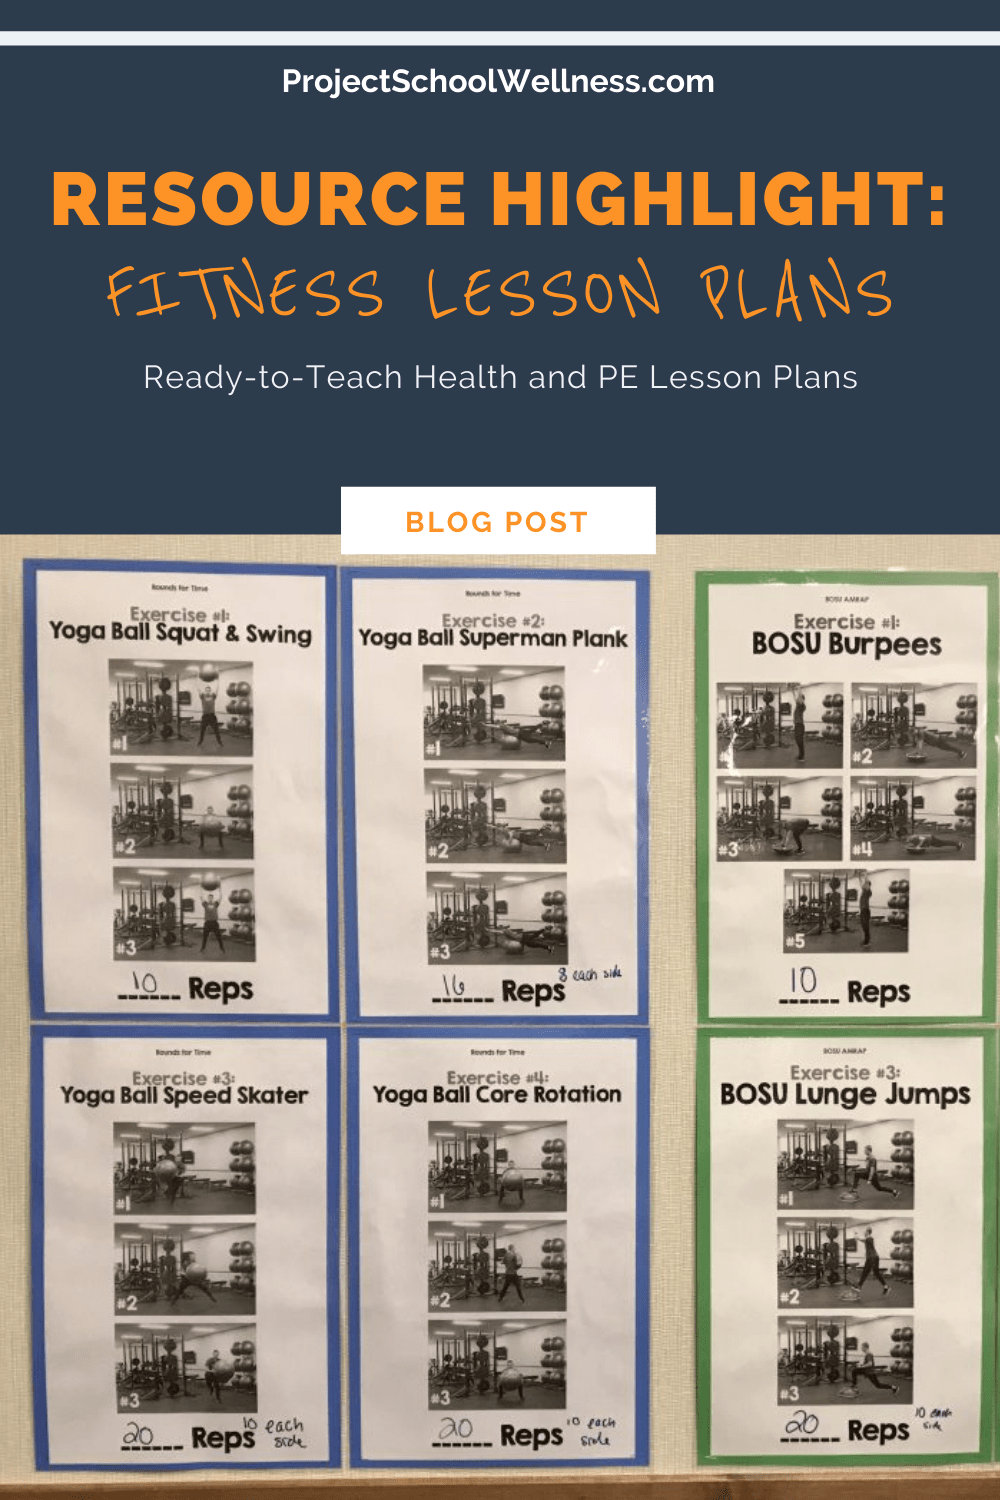 Fitness Lesson Plans a health and physical education unit - teach students the basics of designing a fitness routine and setting goals.